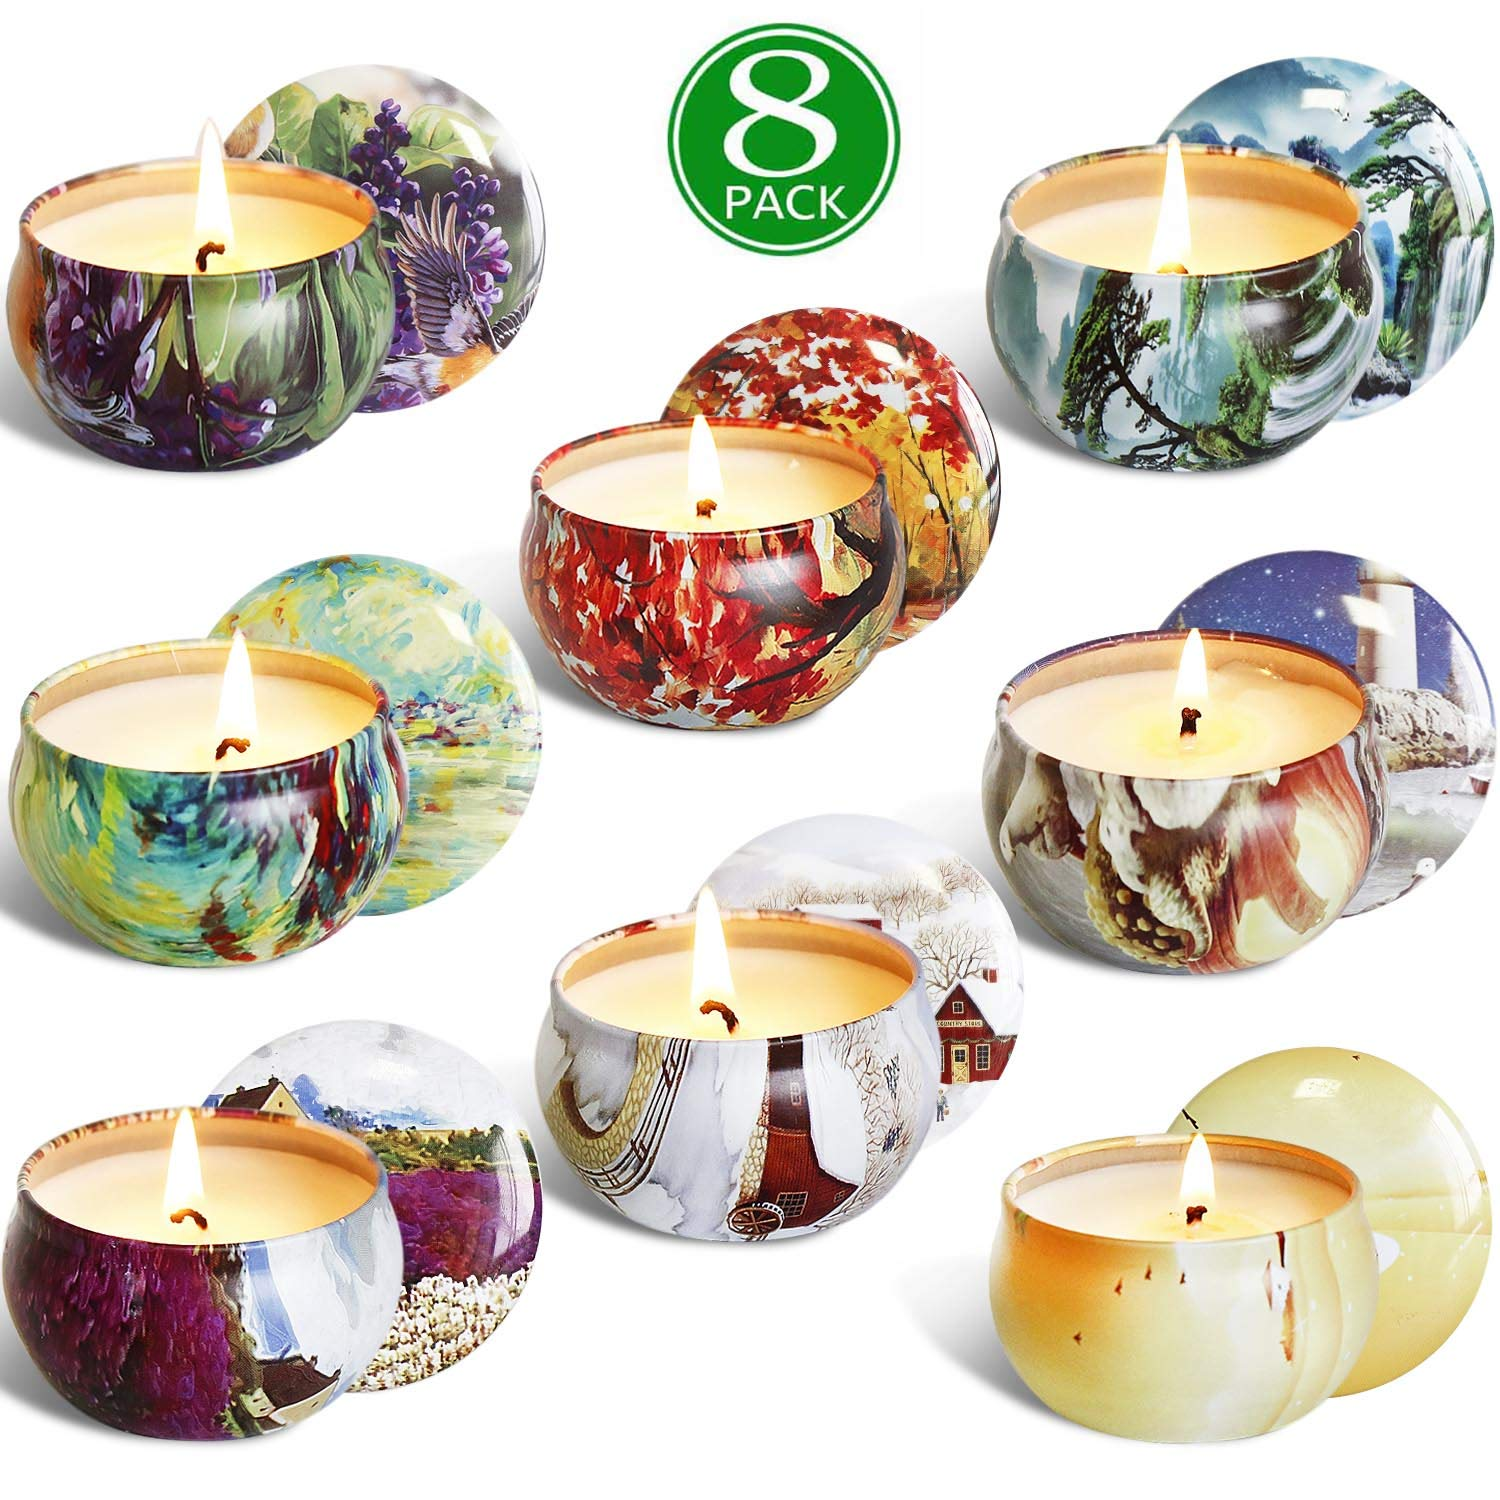 YIIA Scented Candles Gift Set -Lemon, Lavender, Mediterranean Fig,Bergamot,Vanilla,Jasmine,Rose and Spring, Candle Soy Wax for Stress Relief and Aromatherapy, Candles - 8 Pack by YIIA